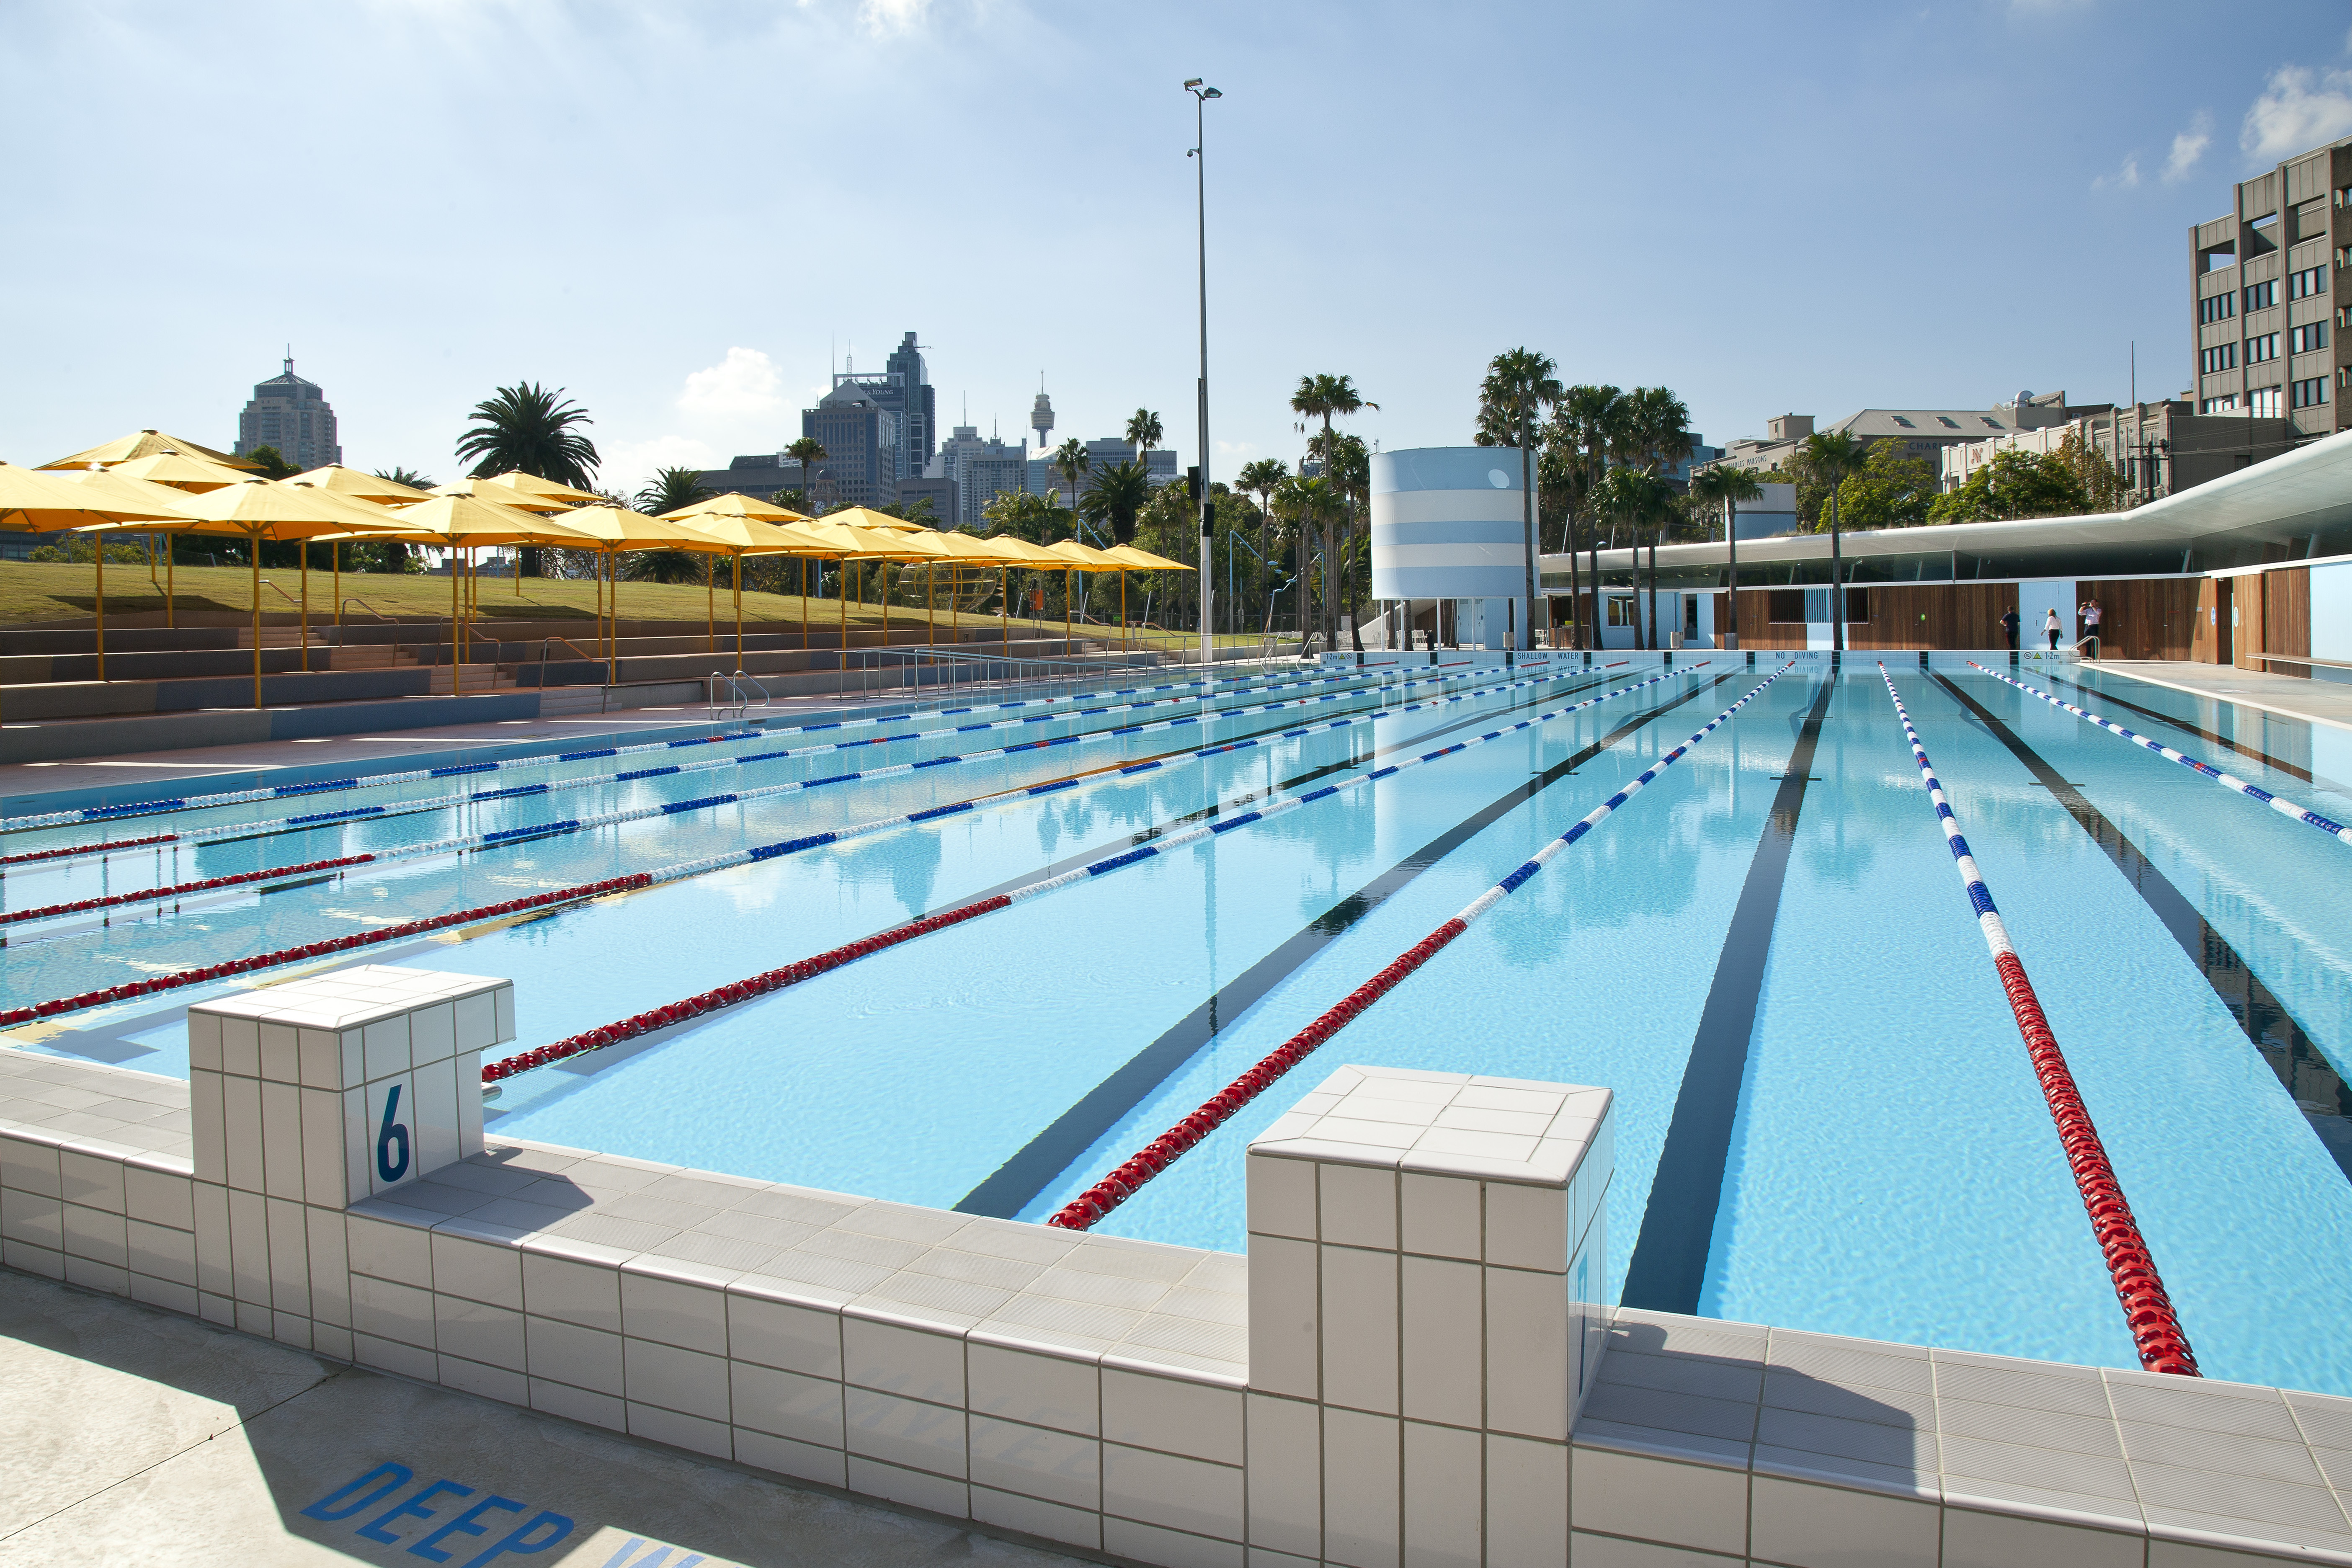 Macquarie university sports and aquatic centre air conditioning installation for Macquarie university swimming pool